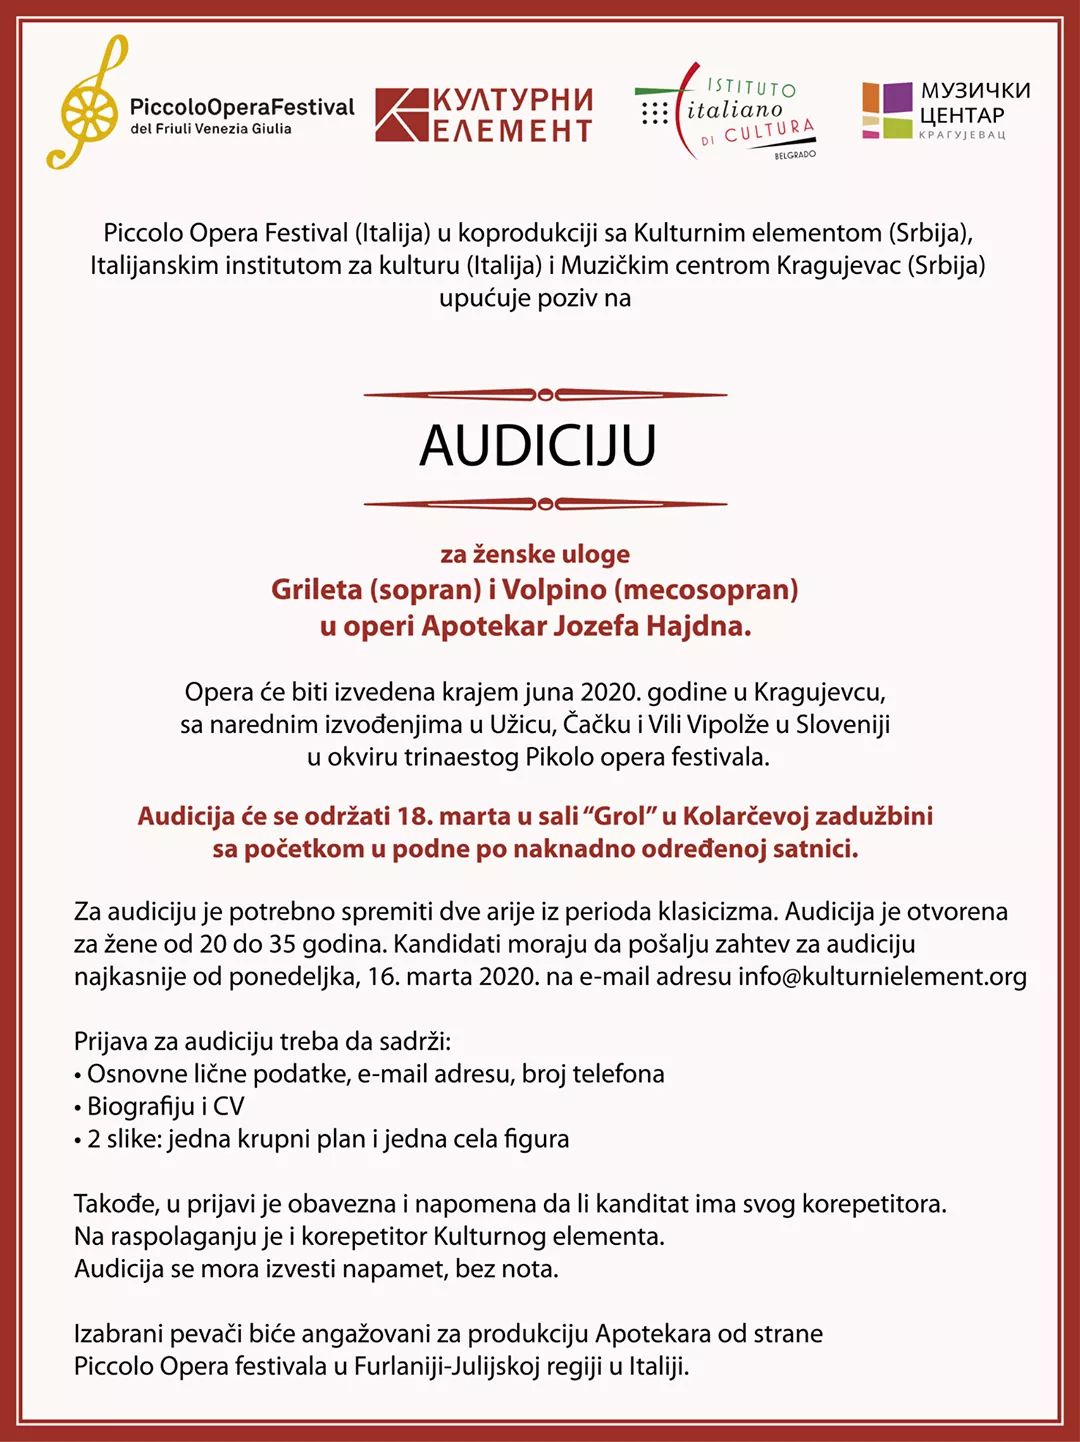 Audition for a female role in the opera The Pharmacist (Lo Speziale)